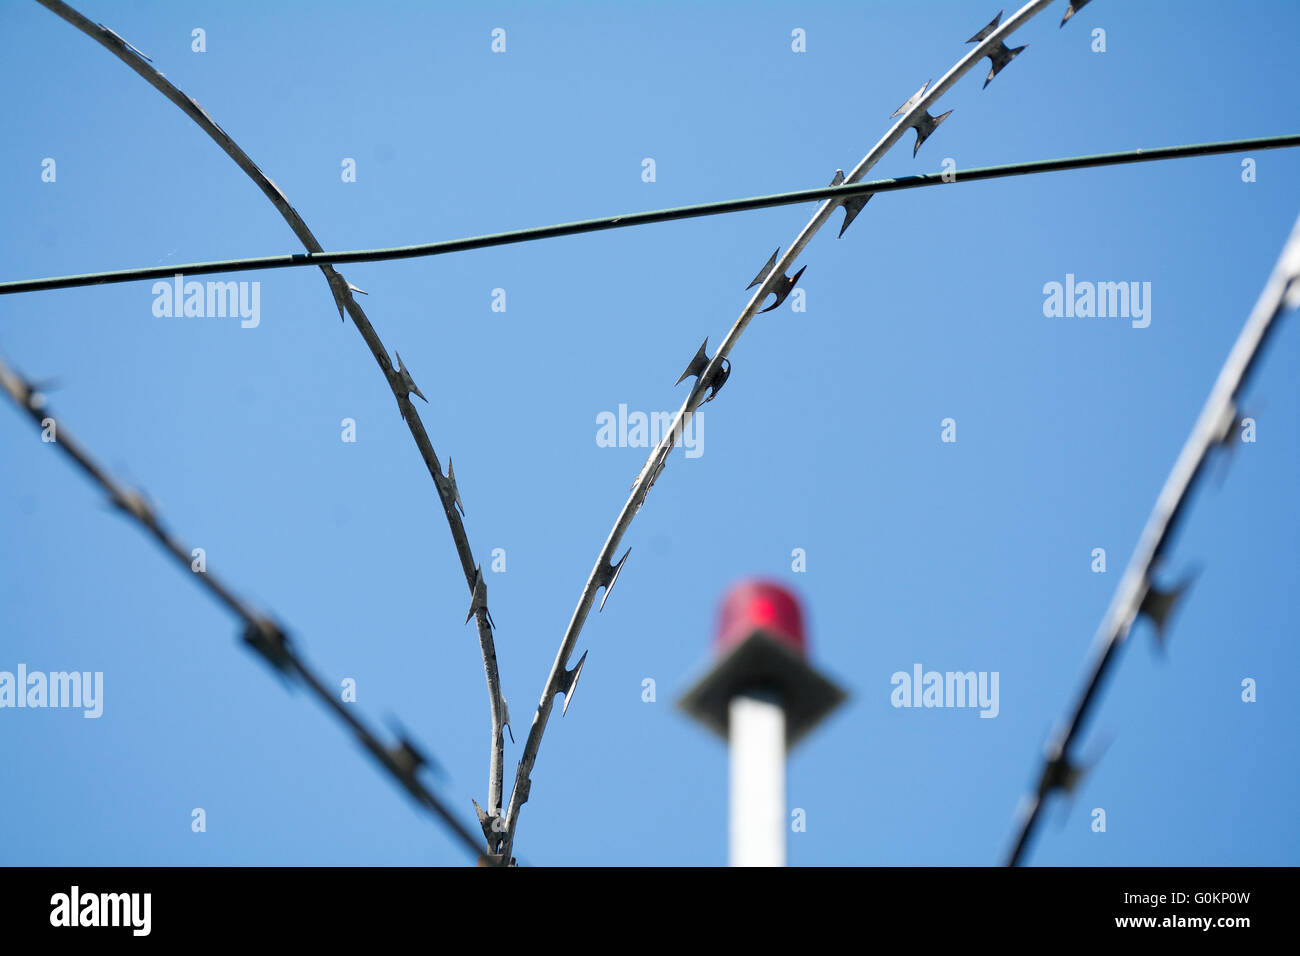 barbed wire and emergency light against the blue sky, selected focus, narrow depth of field - Stock Image